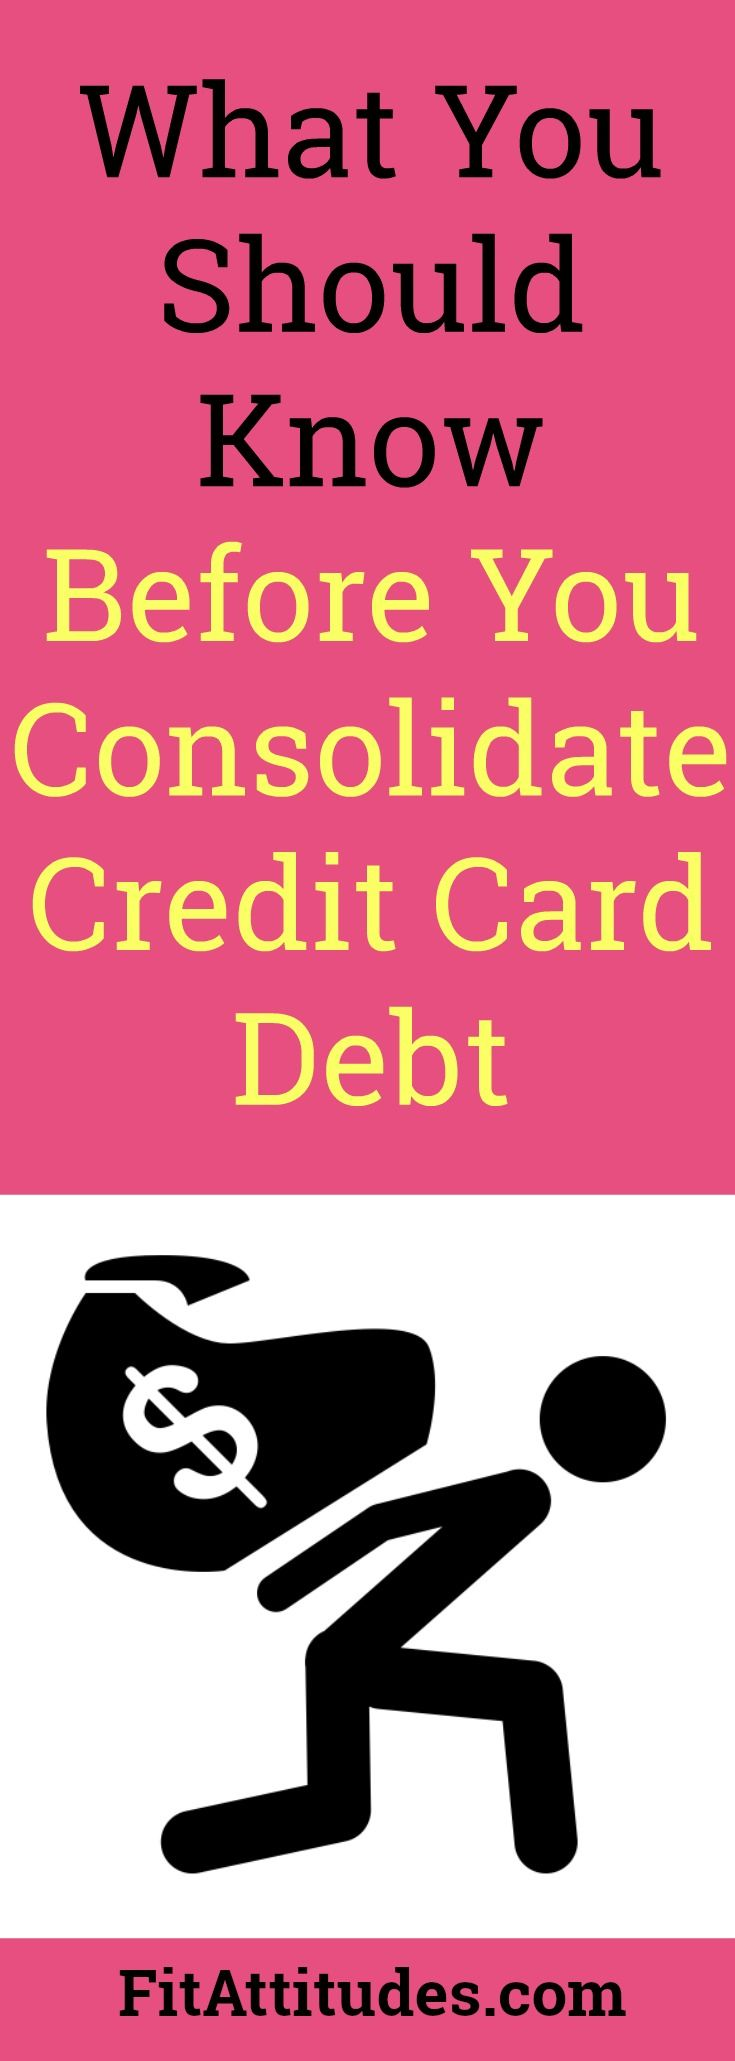 Credit Card Debt Consolidation Tips